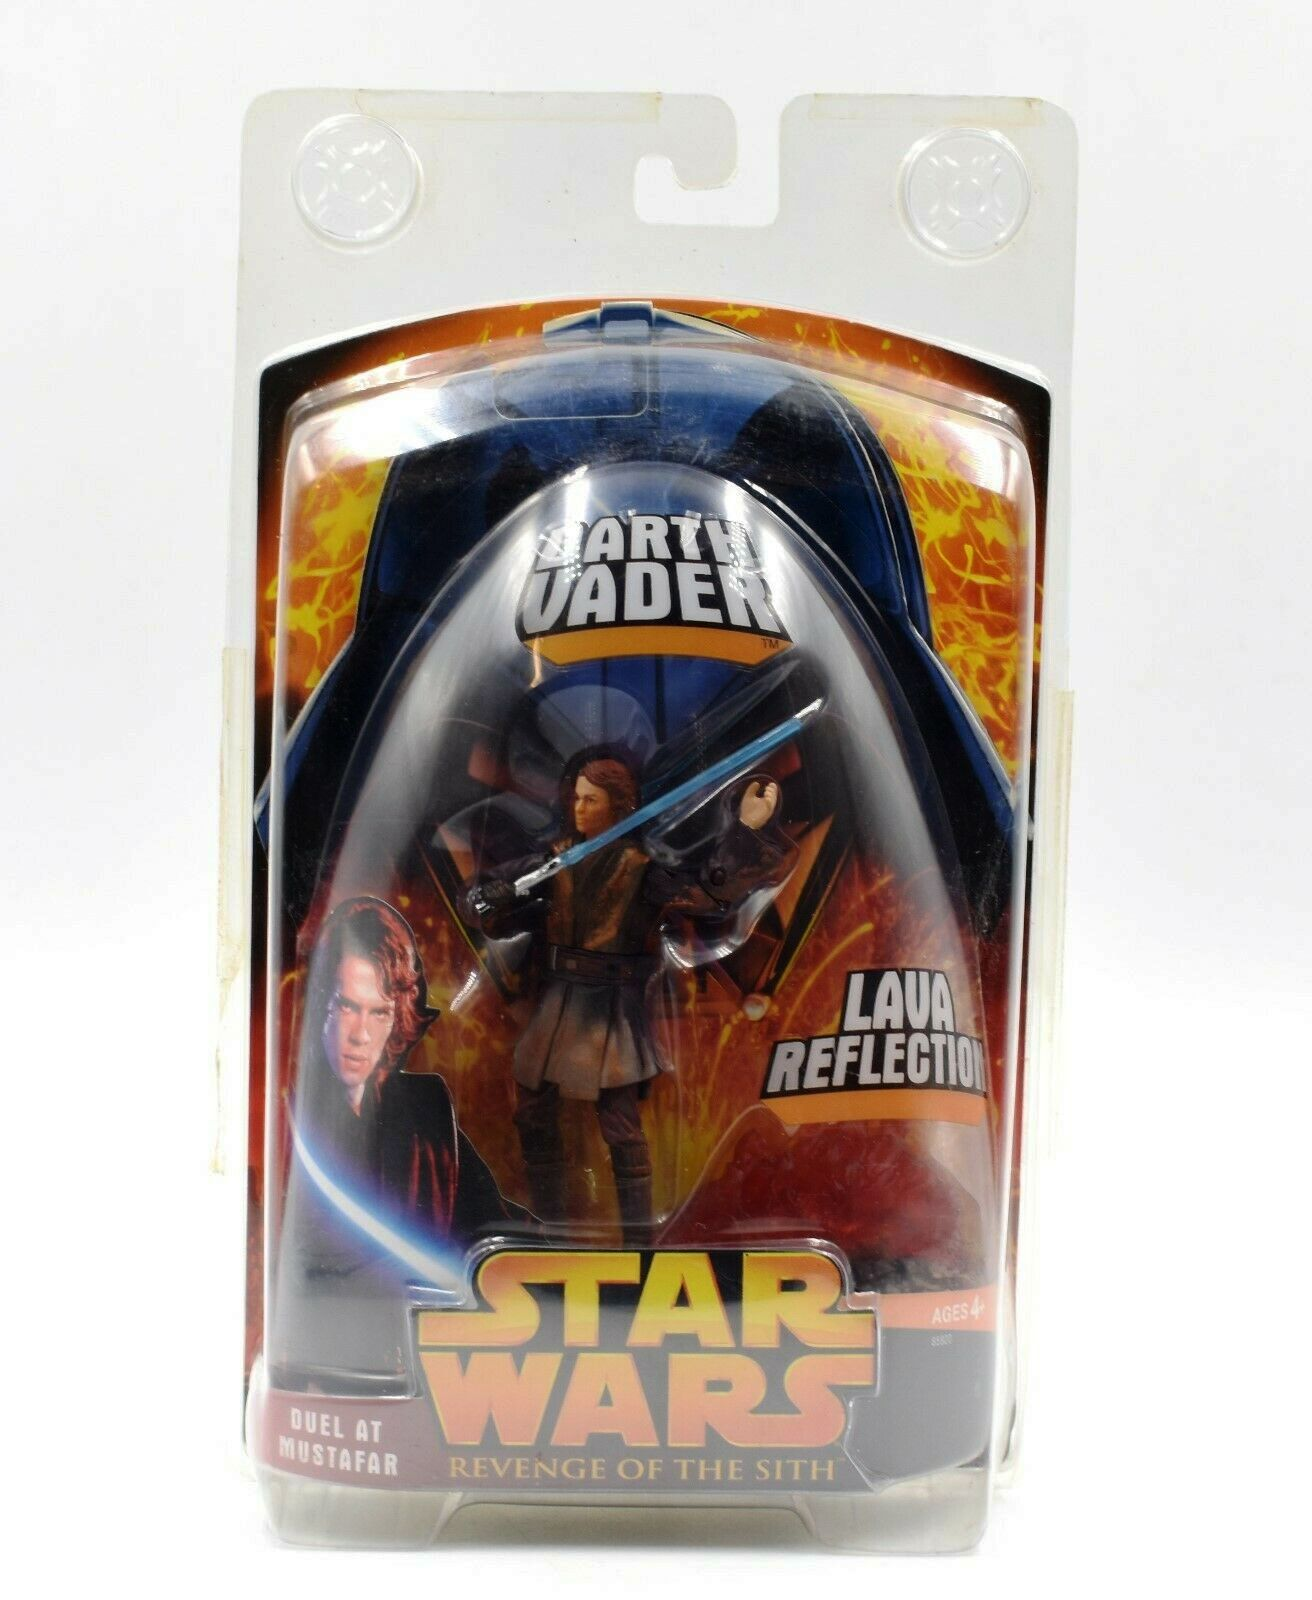 Darth Vader Variant Sith Red Eyes Duel At Mustafar Target Exclusive Star Wars Rots Ep Iii Vintage Collection 1 Series Rare Vintage 2005 Now And Then Collectibles